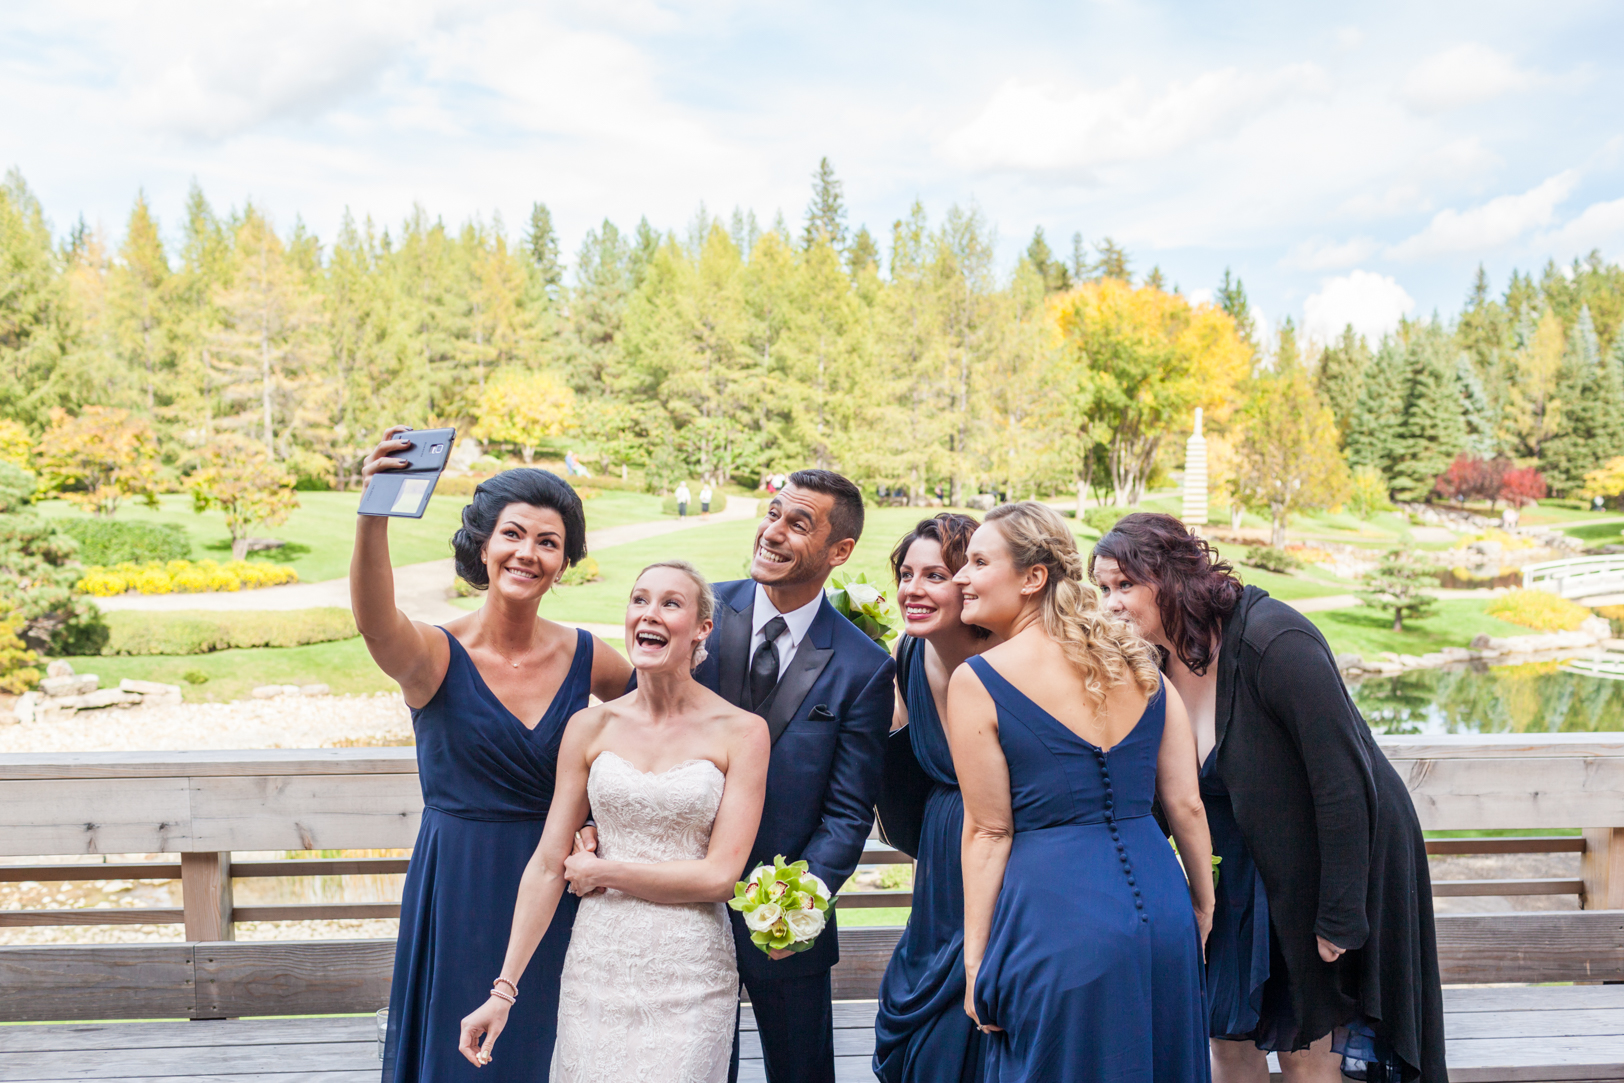 Devonian Botanic Gardens Wedding - fun wedding party photos